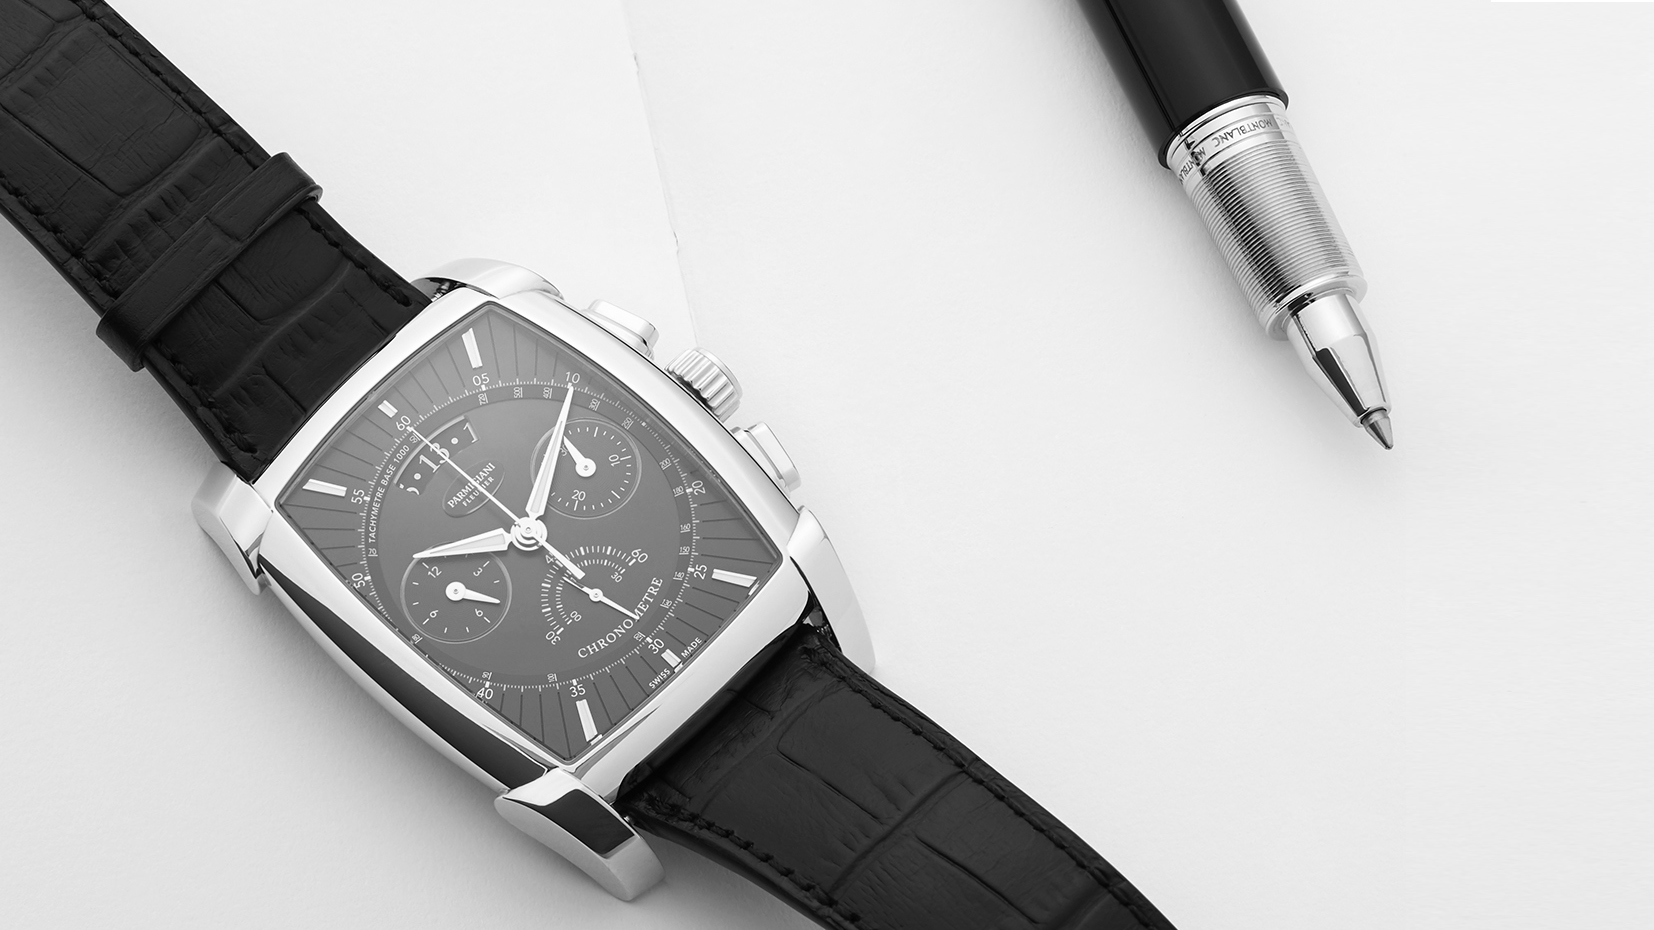 Image of a classic Parmigiani watch with highlight